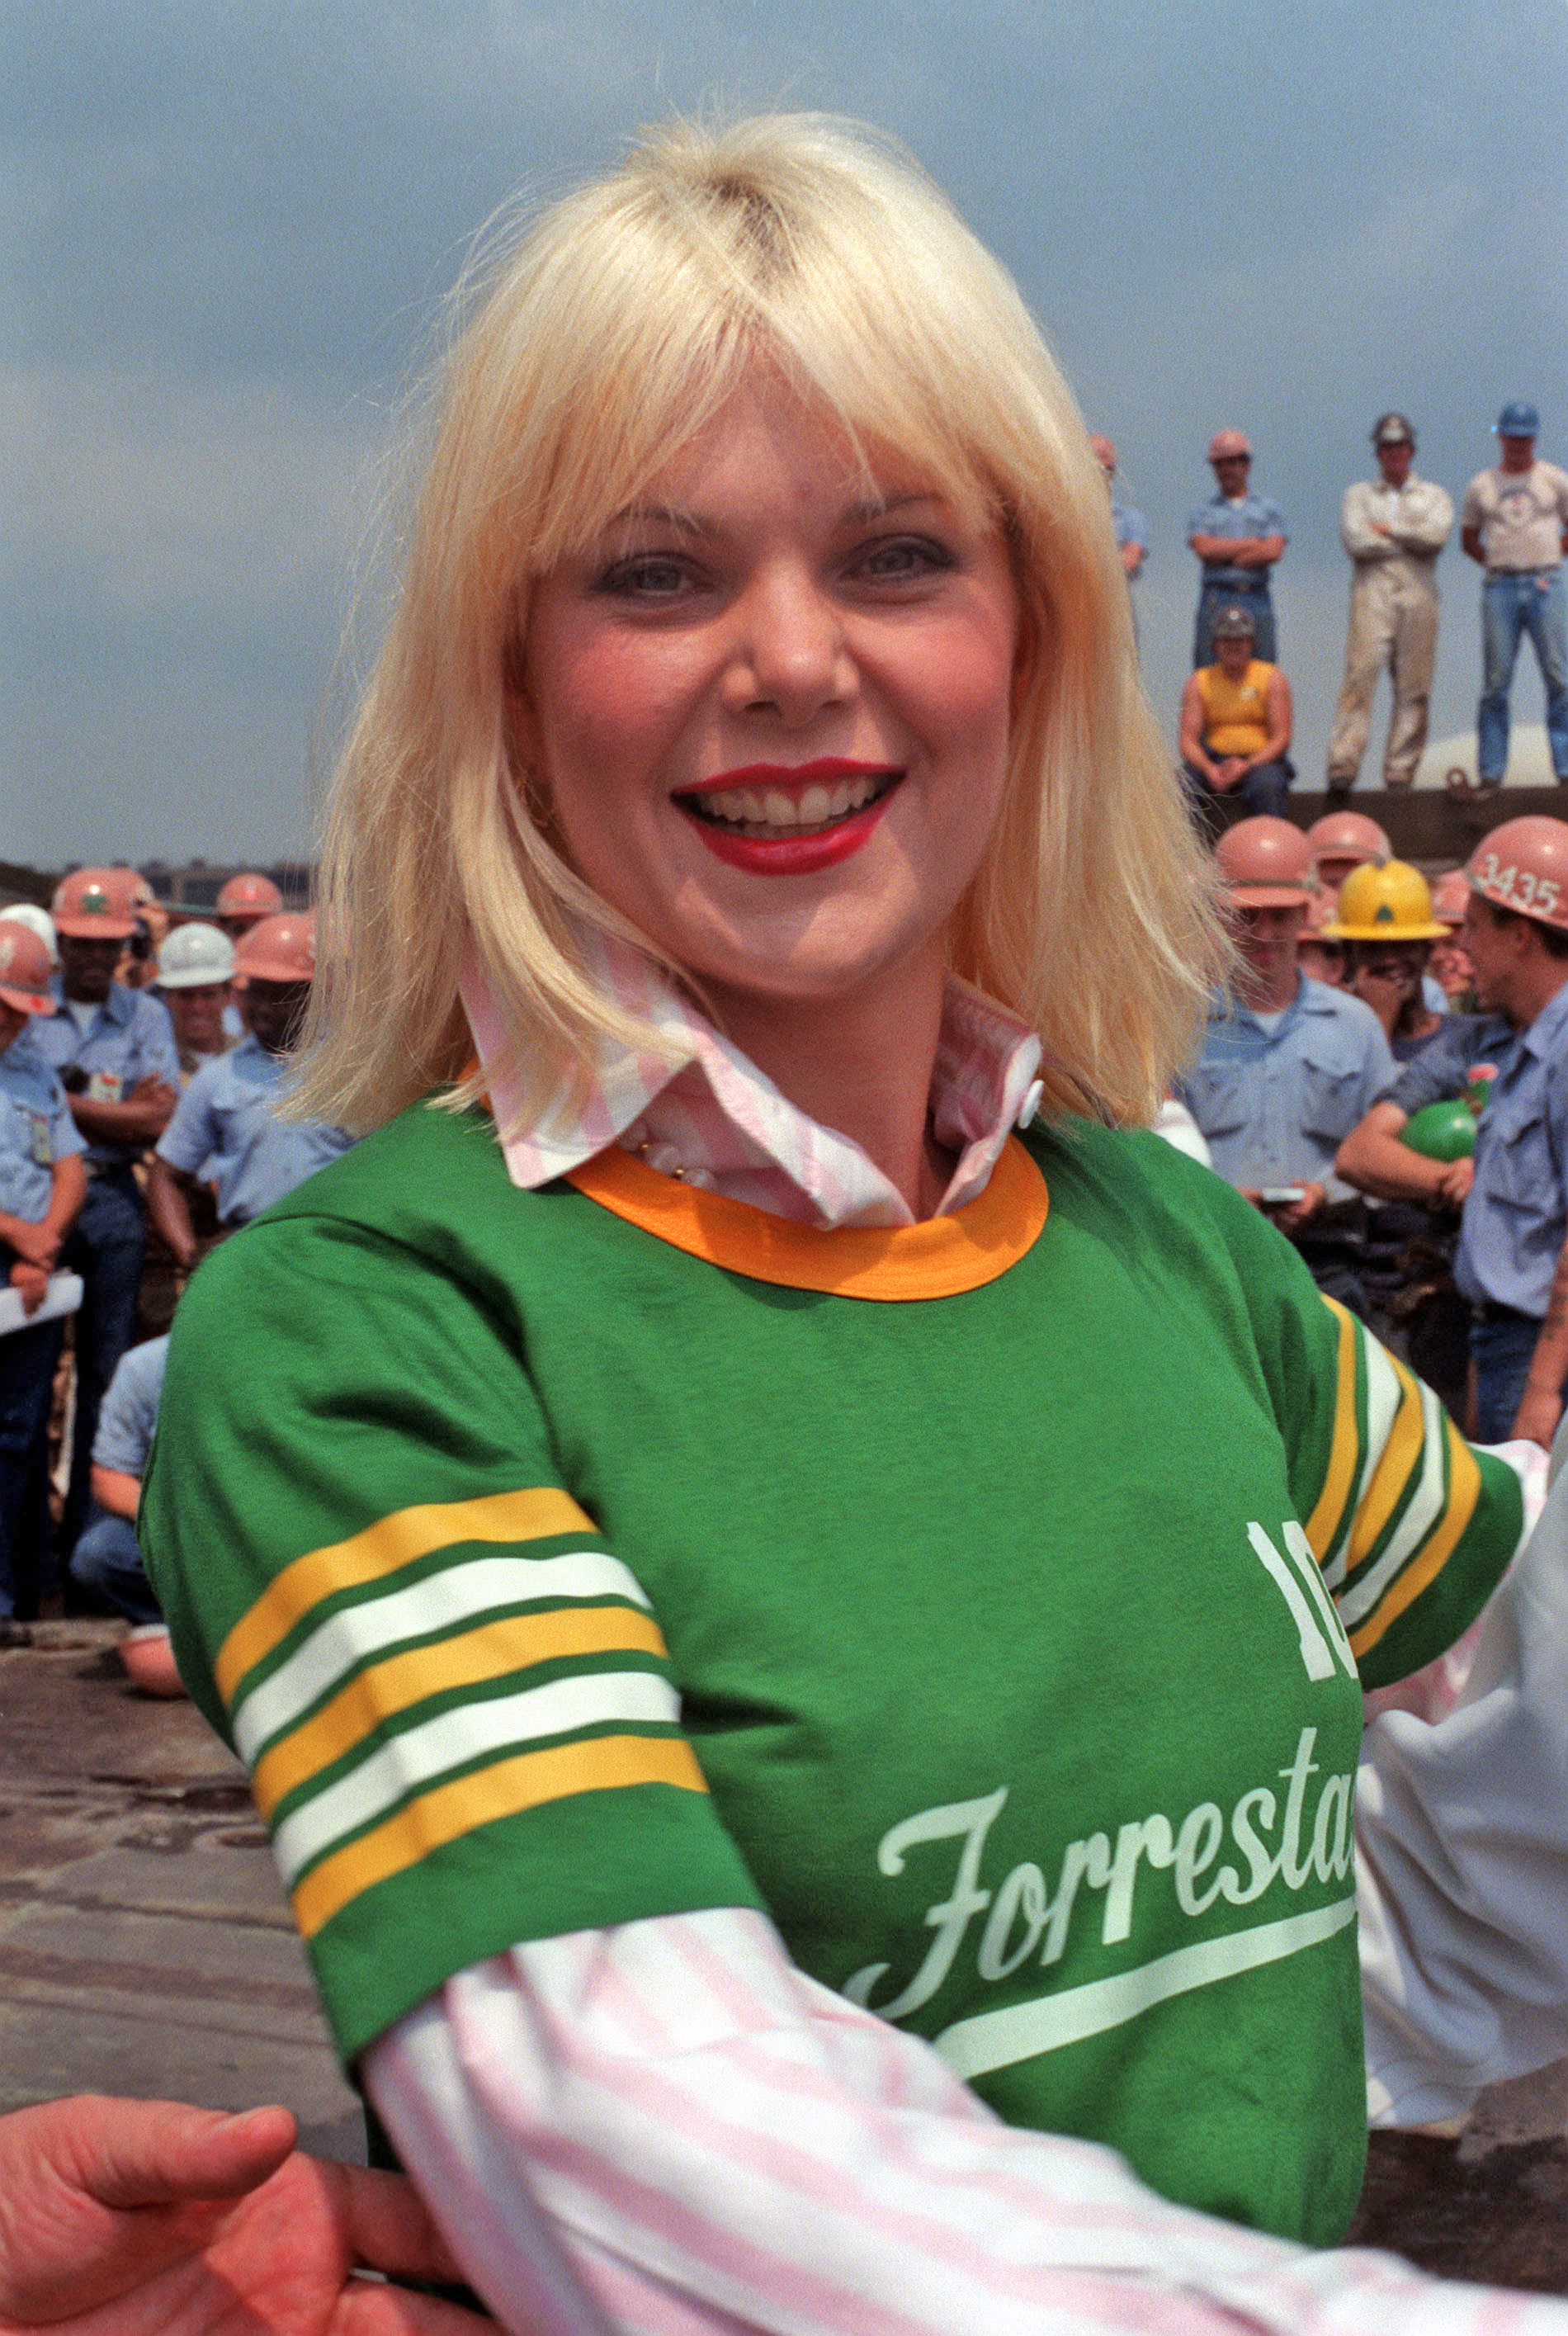 Ann Jillian - Wikipedia, the free encyclopedia